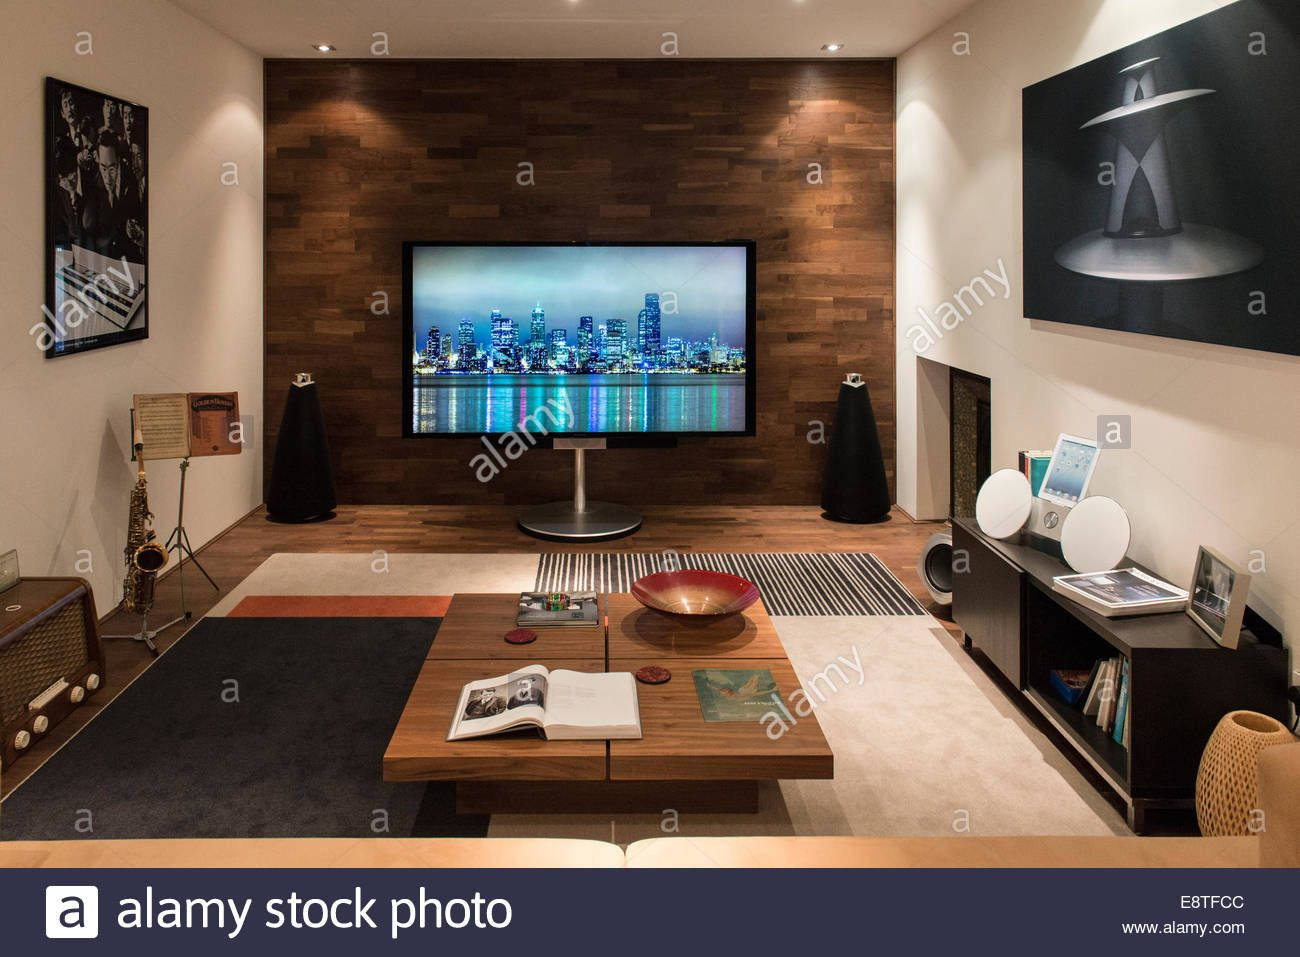 Download This Stock Image Listening Room At A High End Hi Fi Music Sound System Technology Store All Laid Out To Be A Show L Listening Room Room Tv Wall Unit #sound #system #living #room